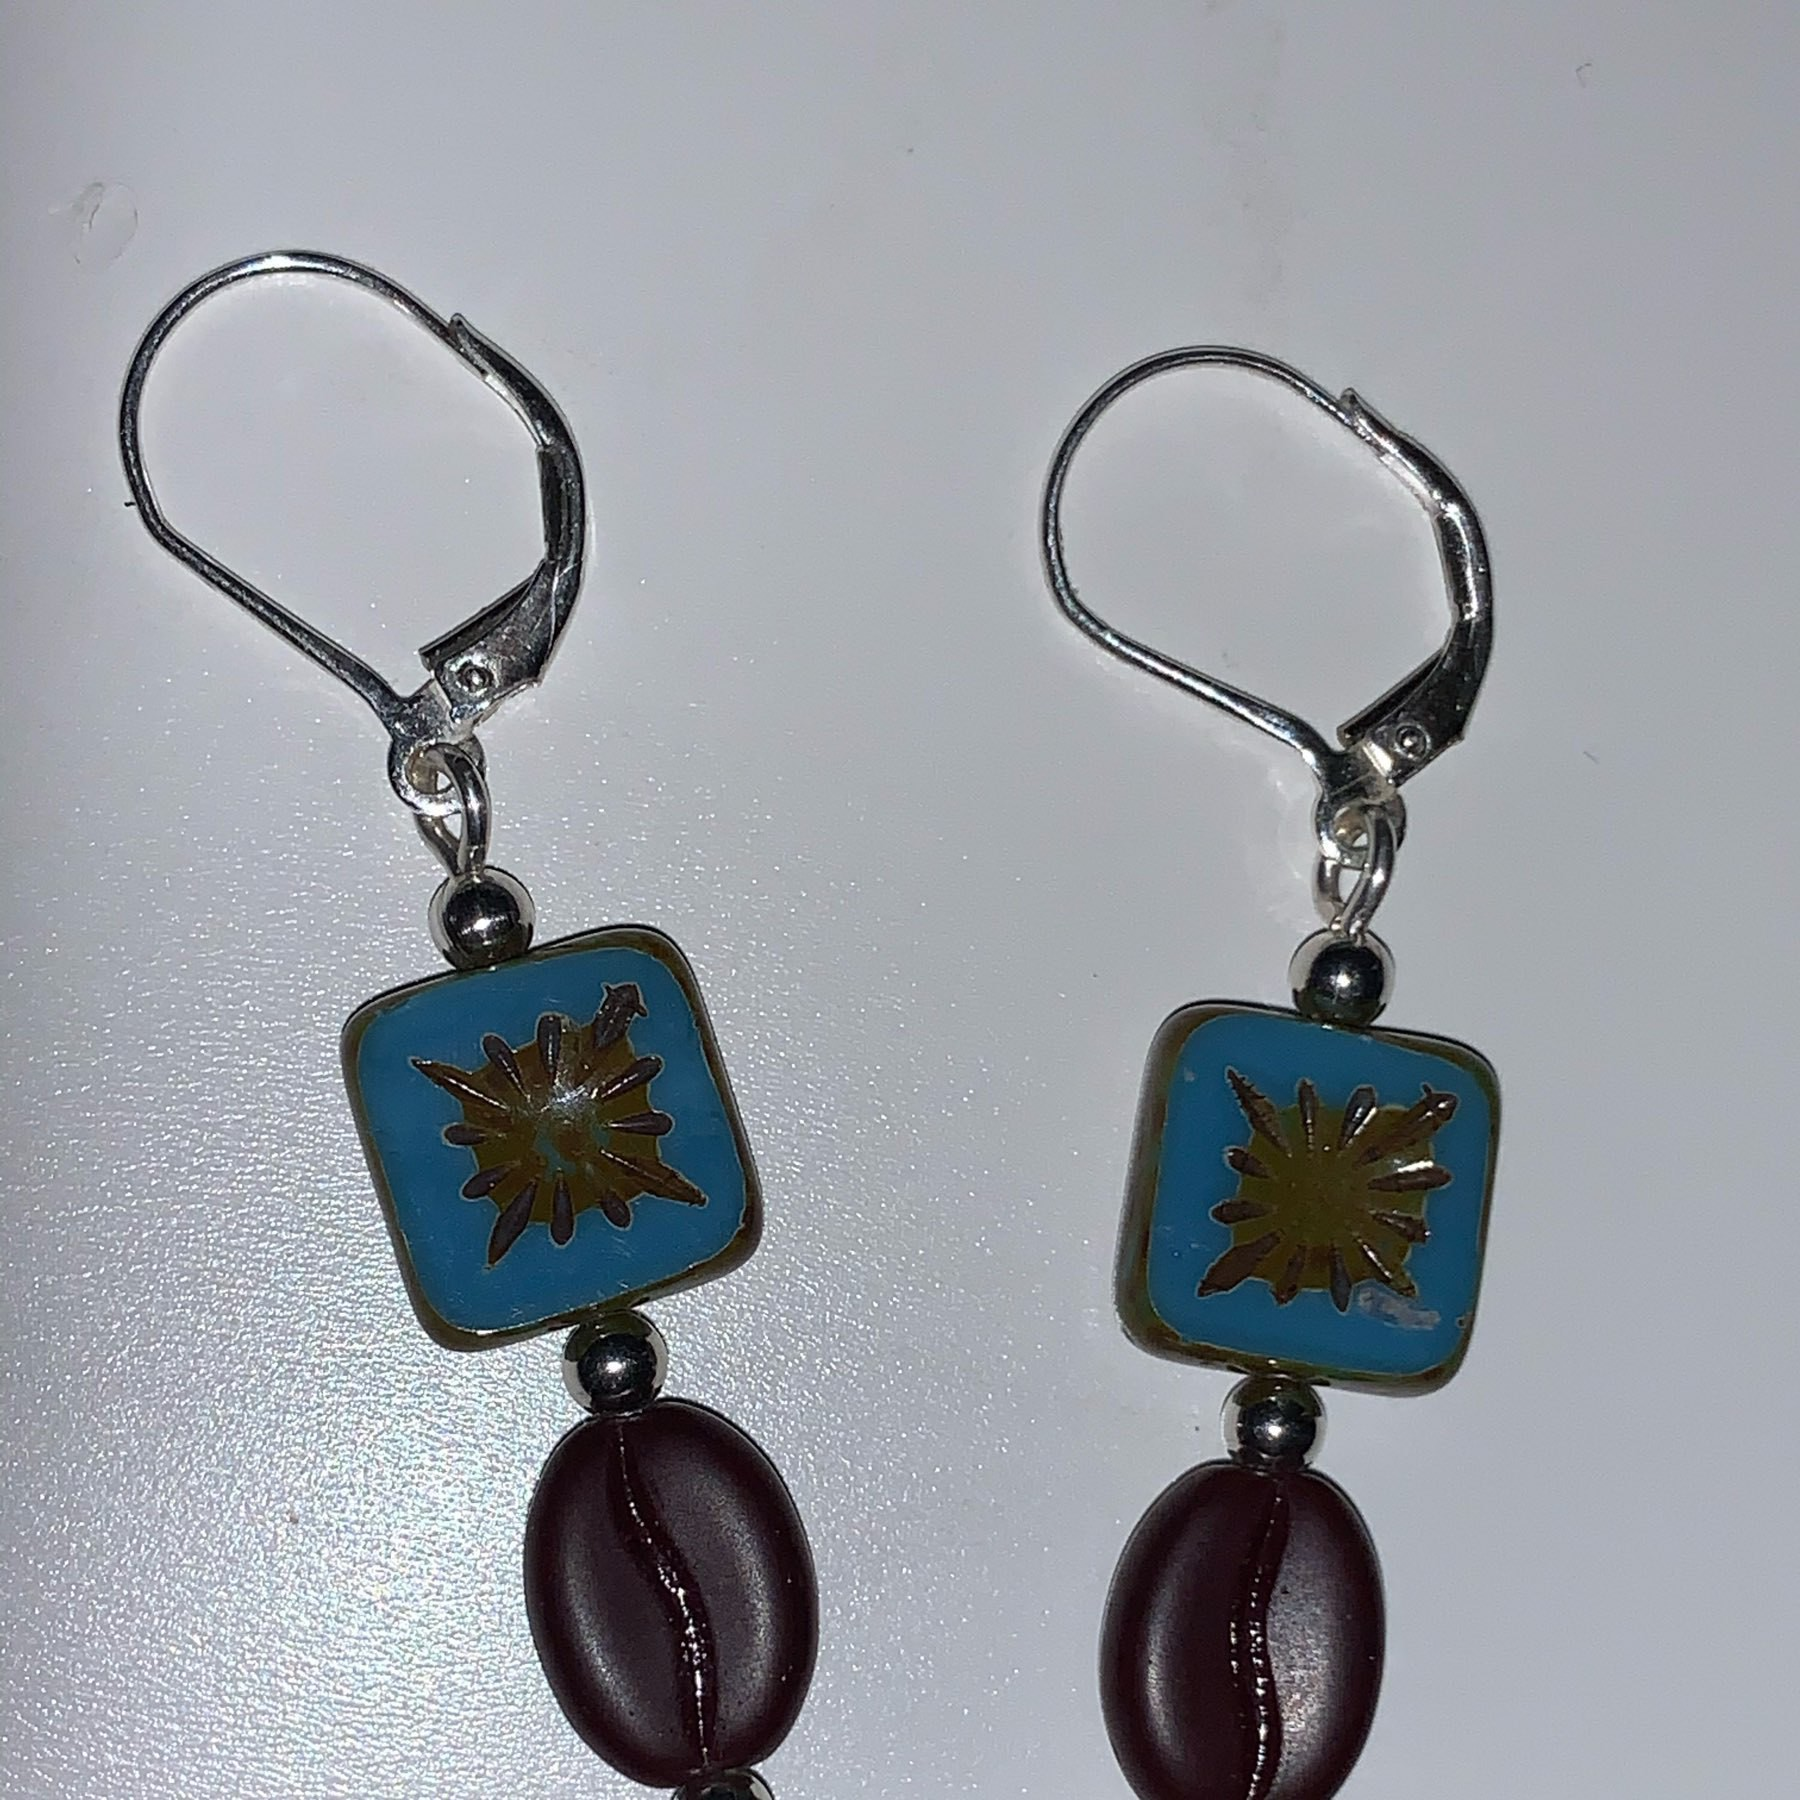 A pair of earrings each having a blue, square bead and coffee bean bead mounted on silver